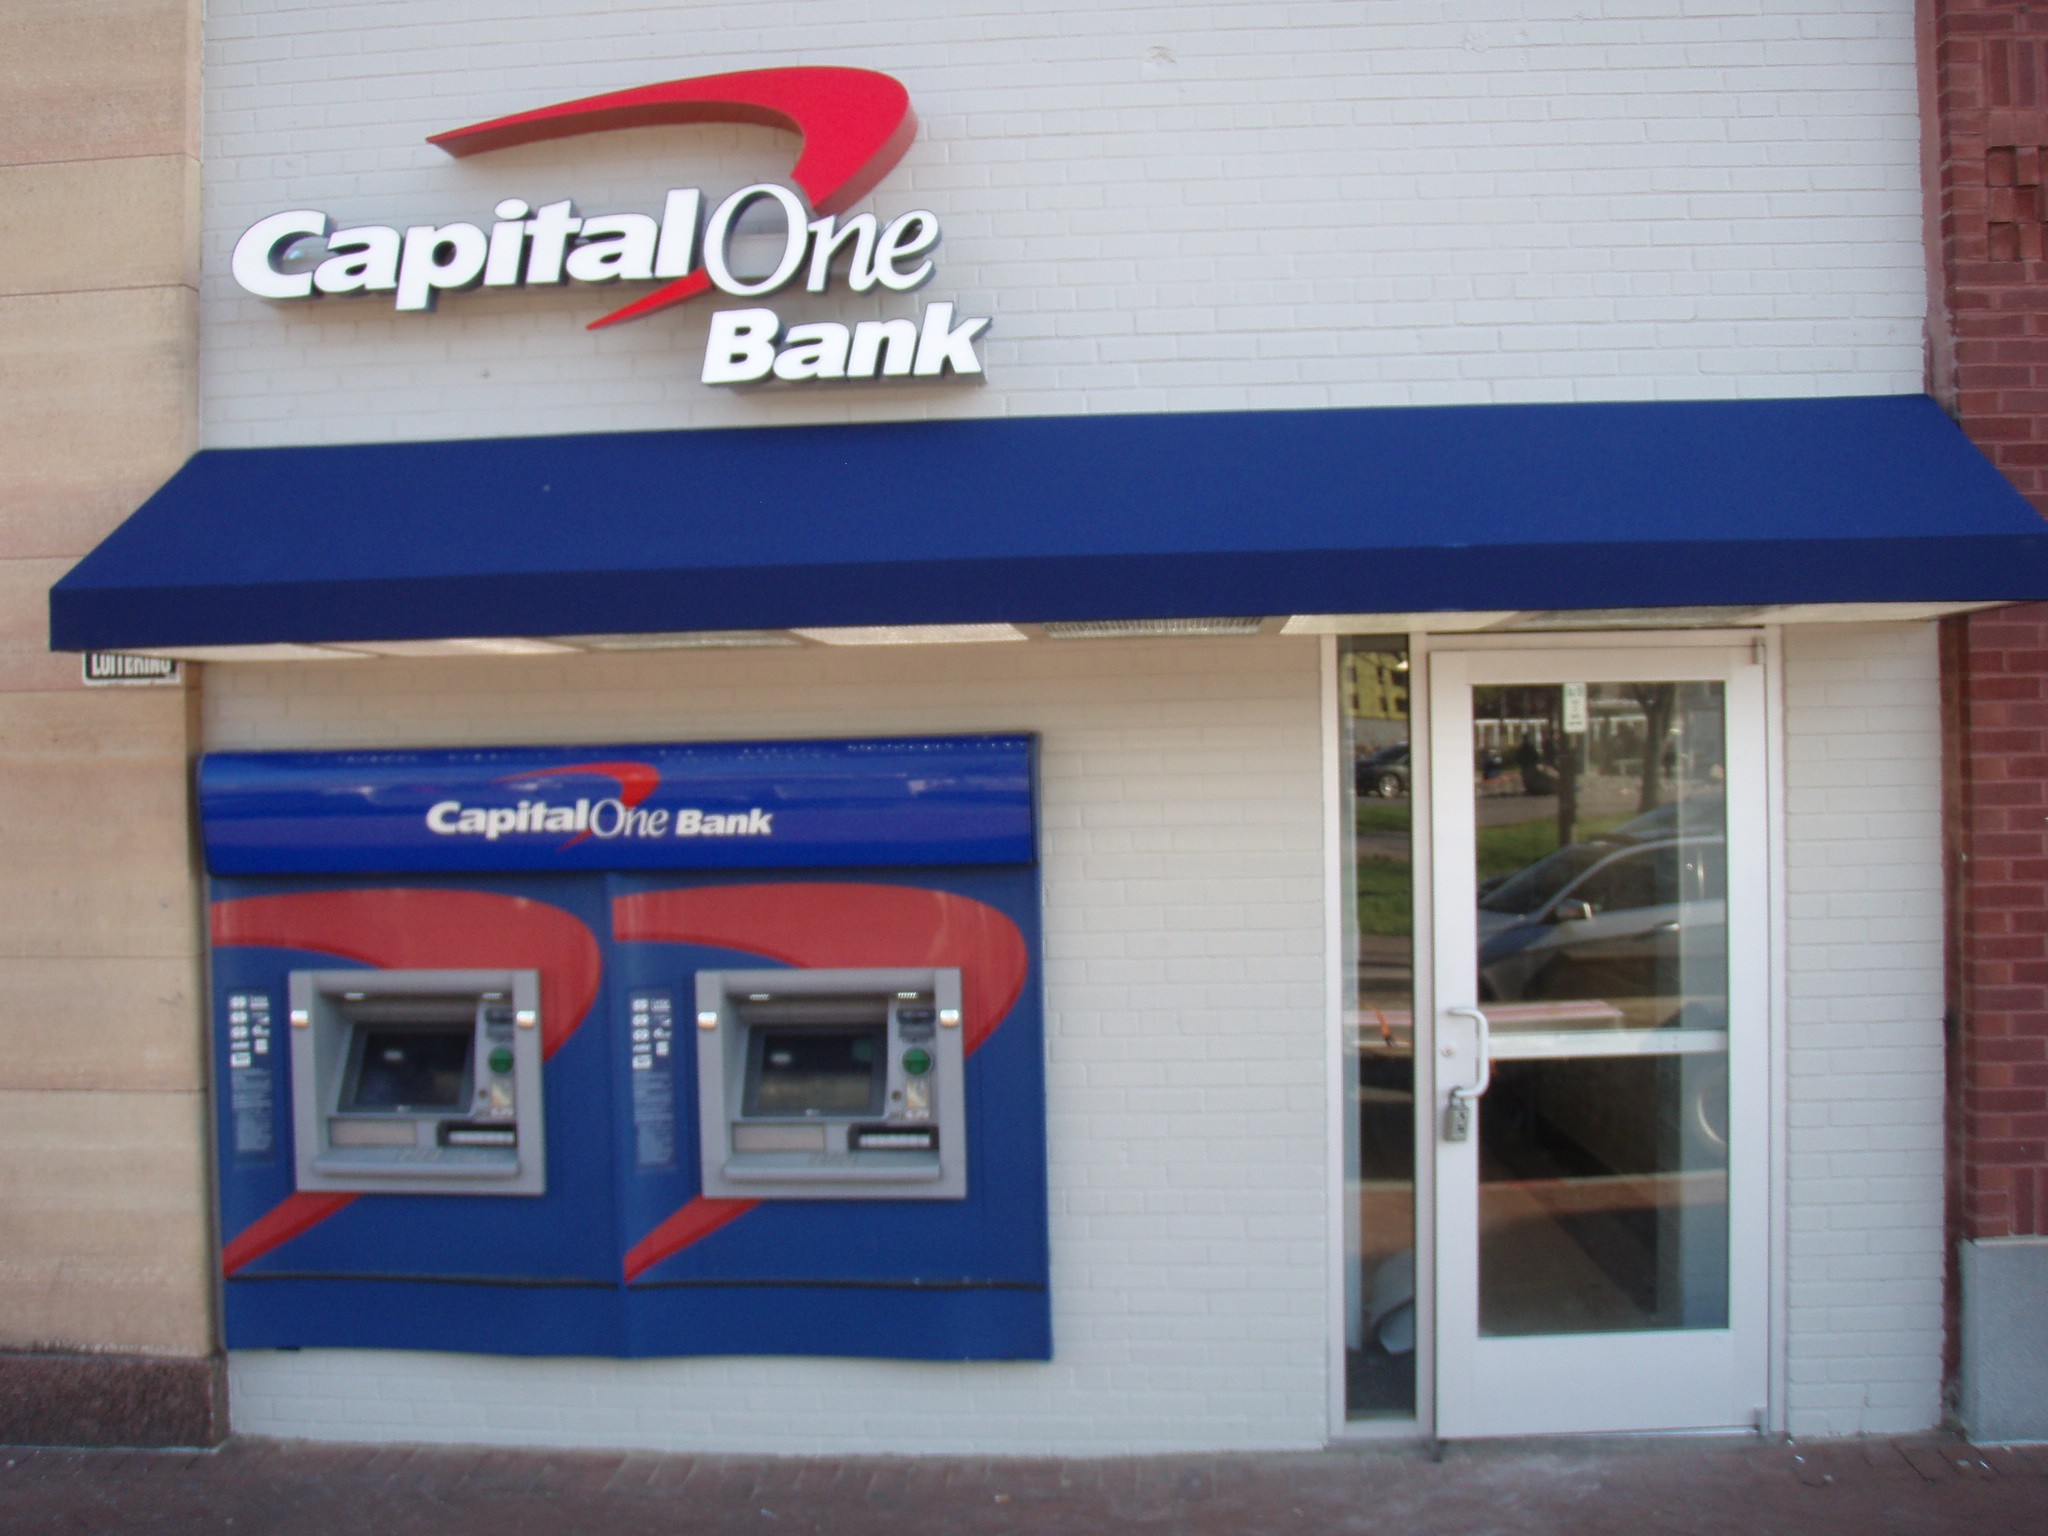 Capital One Bank signage